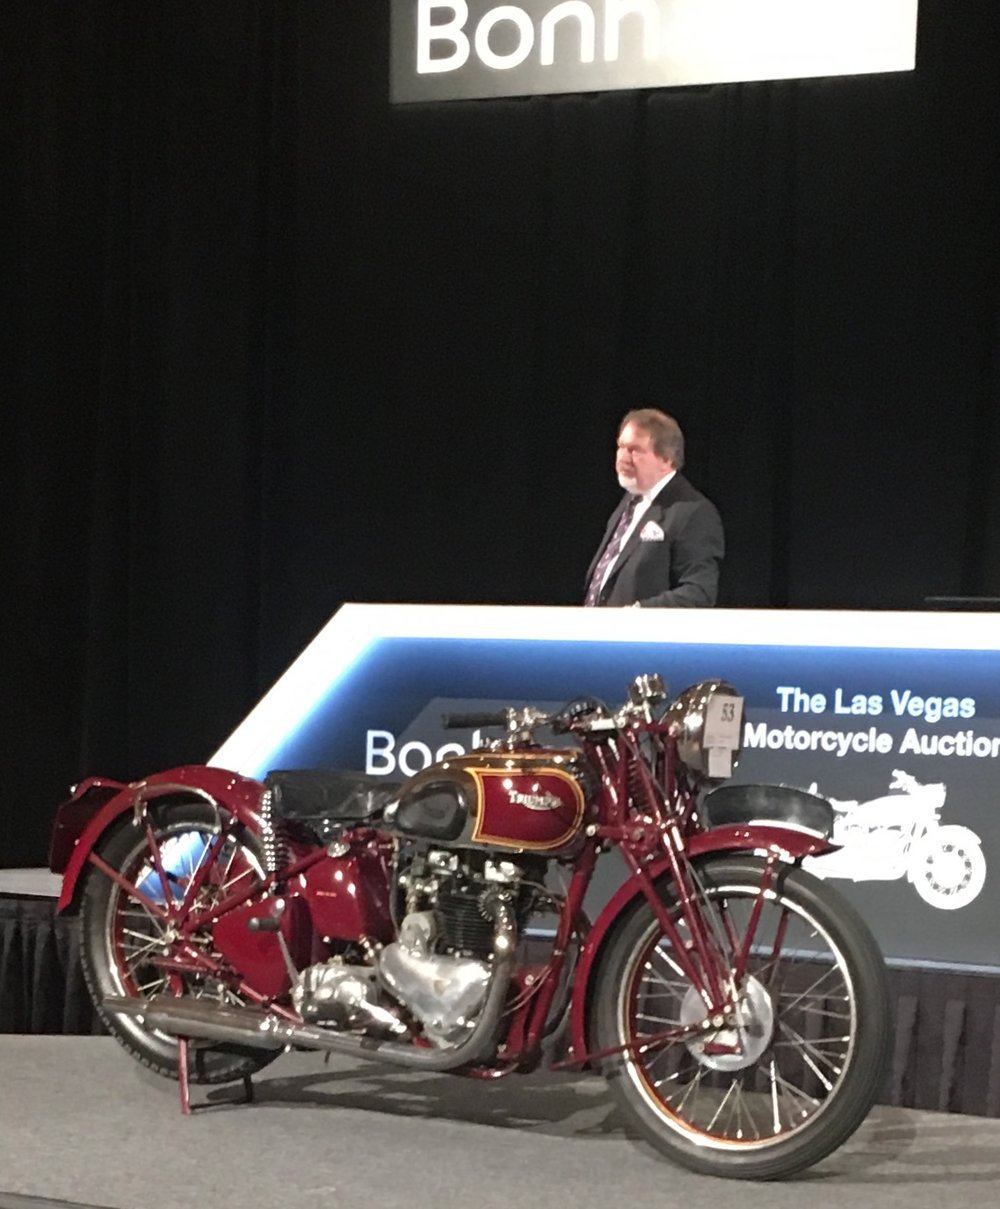 There was competitive bidding all the way to the end, as Steve McQueen's Triumph sold for $175,000.